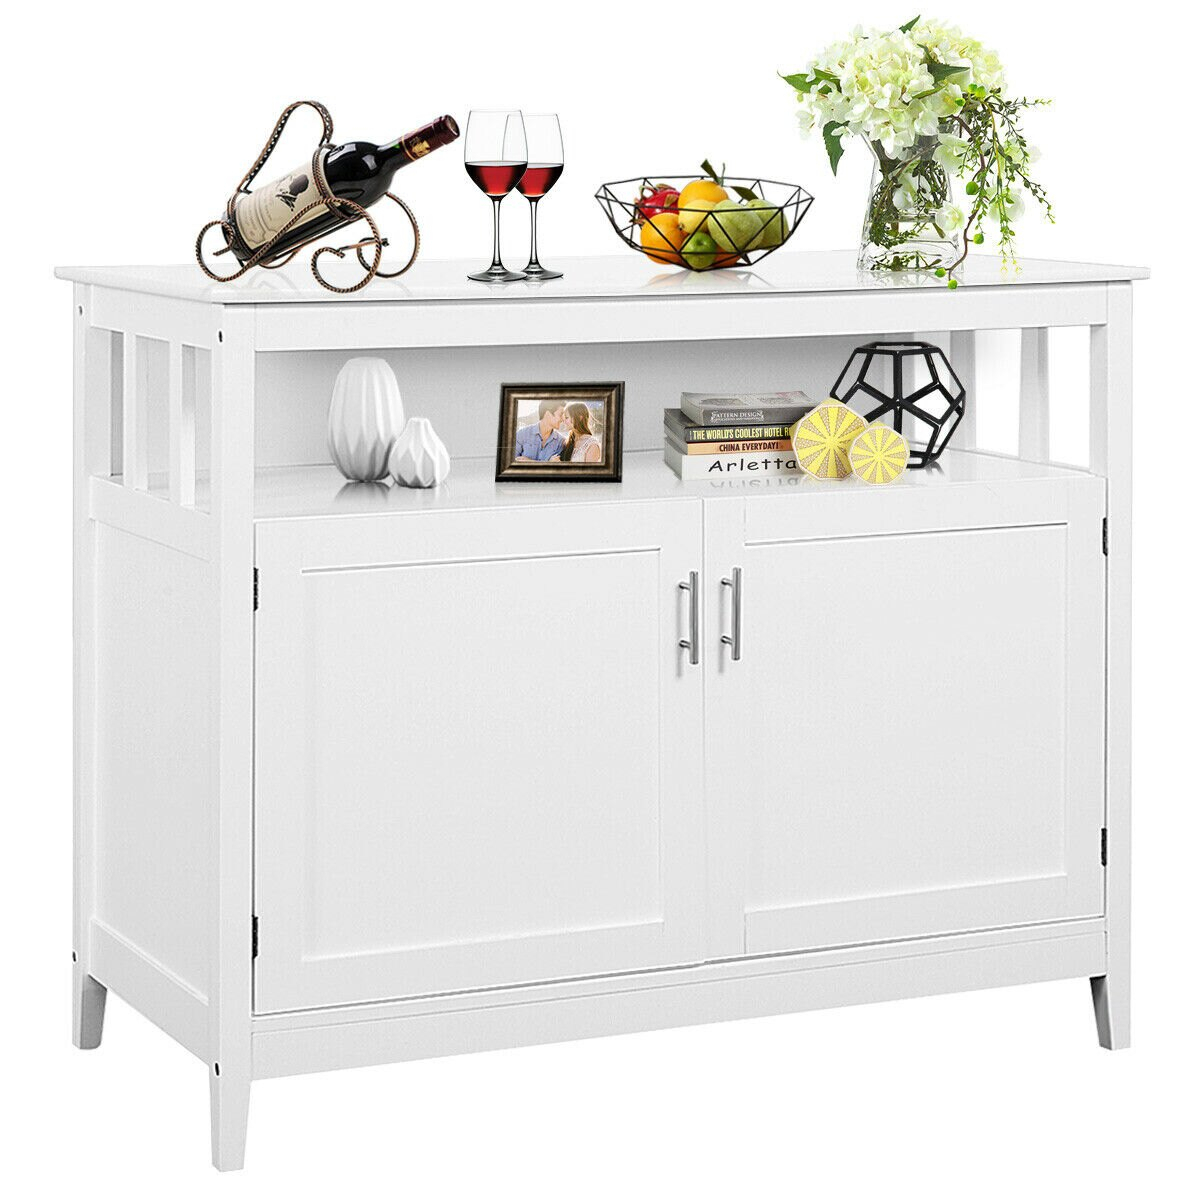 Costway: Costway Modern Kitchen Storage Cabinet Buffet Server Table Sideboard Dining Wood White | Rakuten Pertaining To Contemporary Rolling Buffets (View 7 of 30)